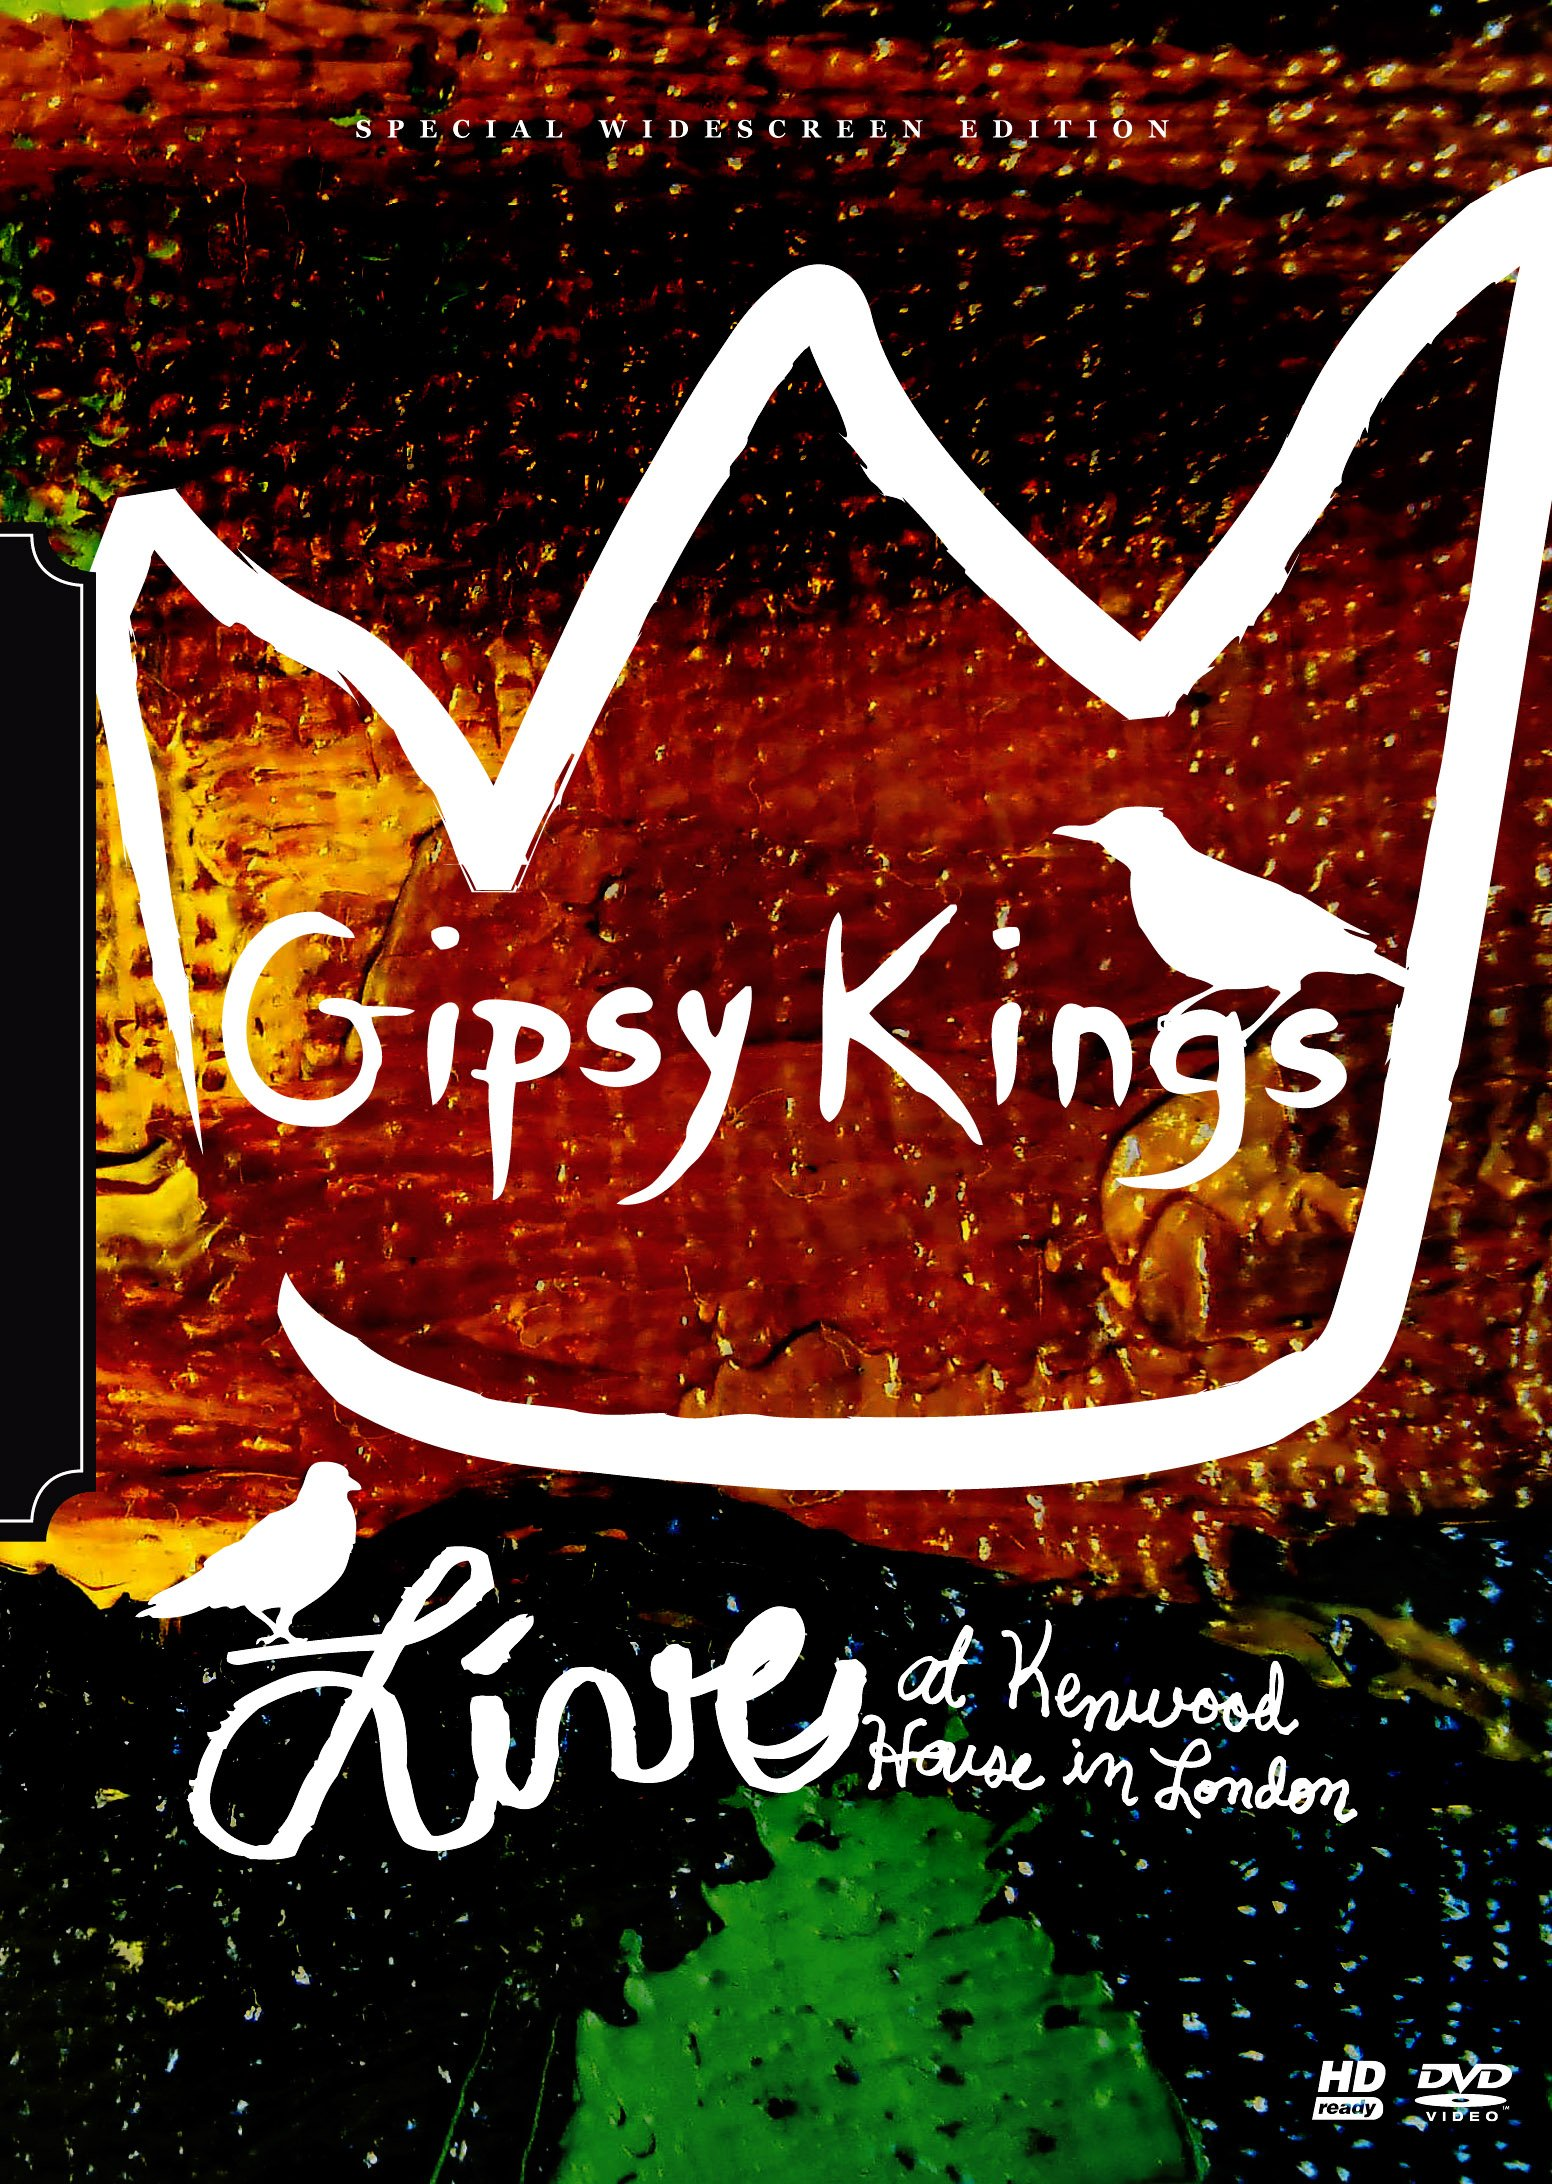 Gipsy Kings: Live at Kenwood House in London by Adrenaline Music